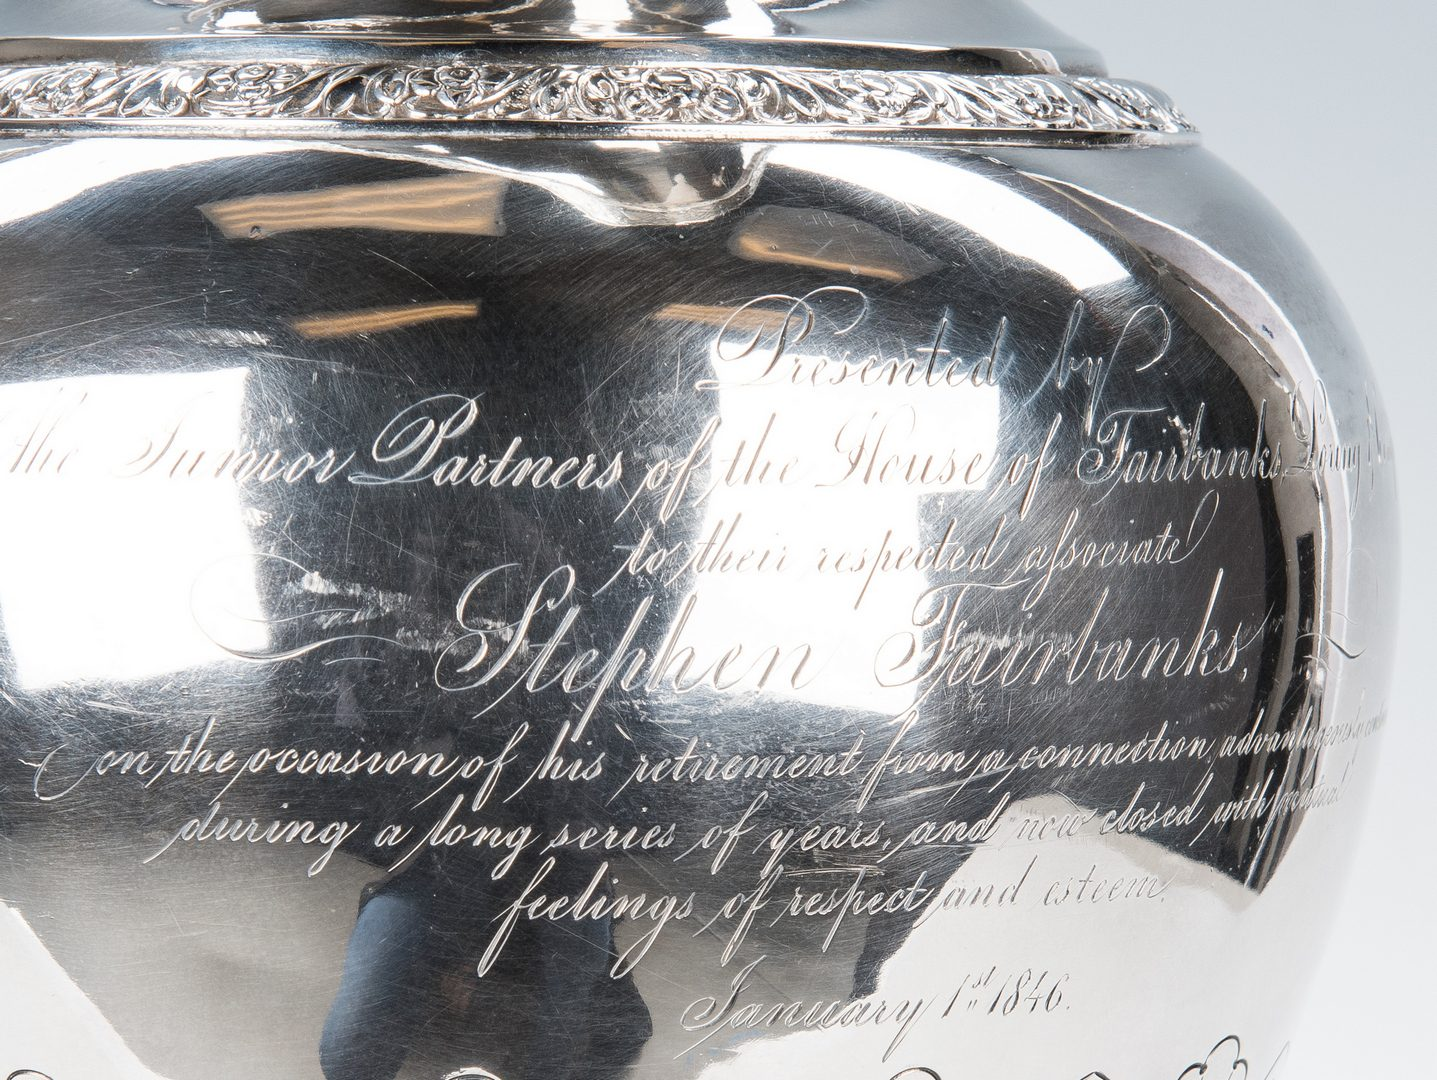 Lot 72: Coin Silver Presentation Pitcher